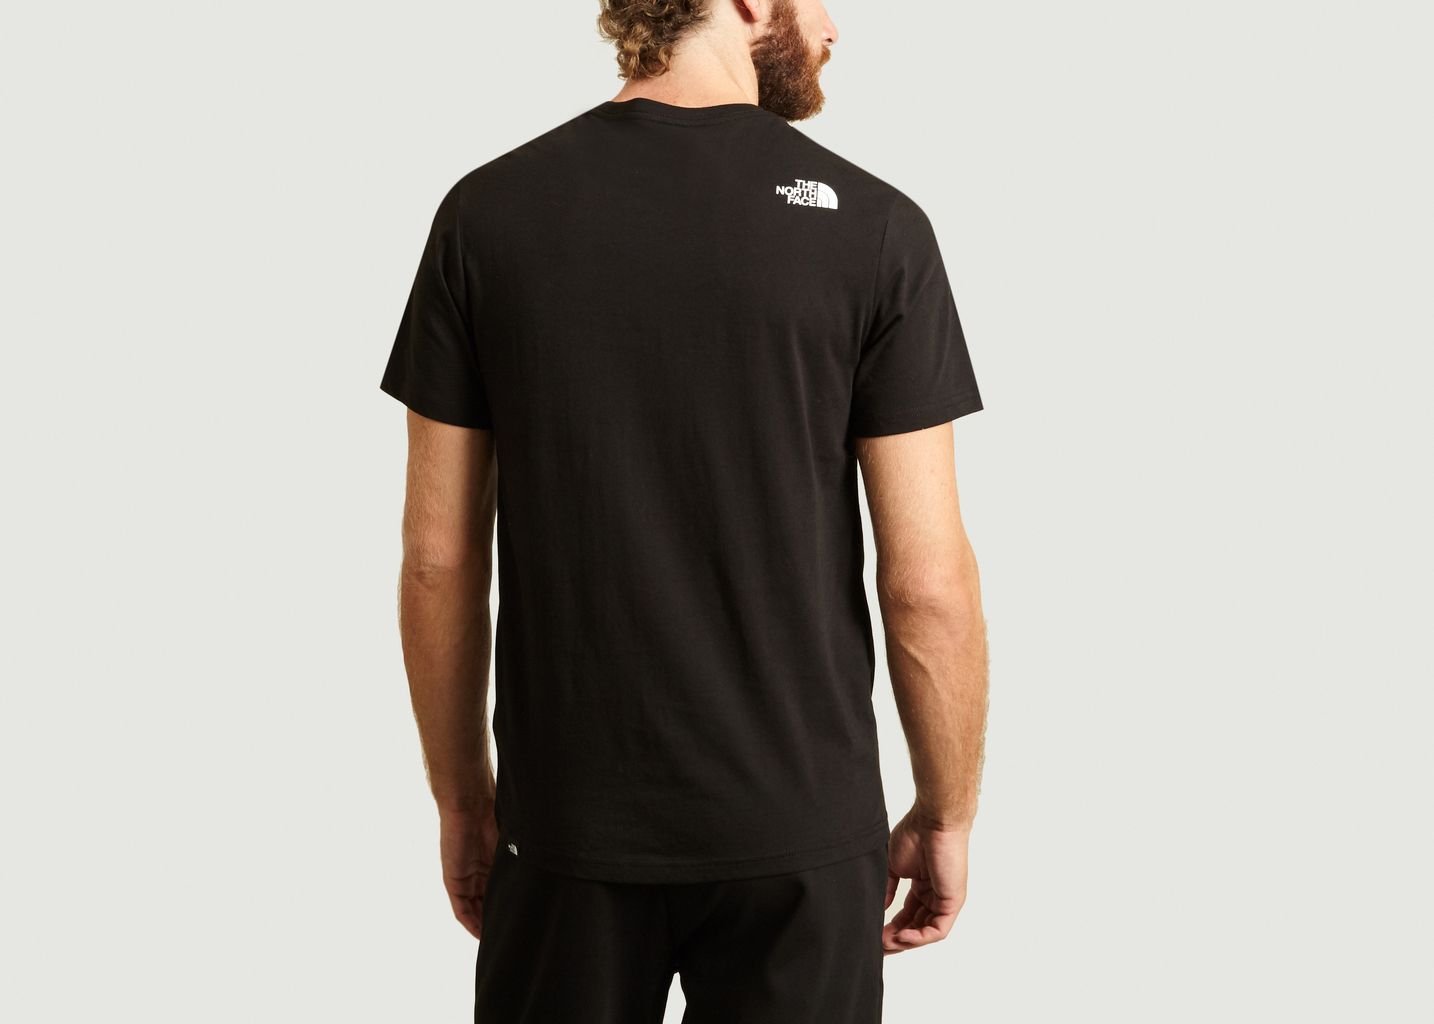 T-Shirt Fine Tee - The North Face